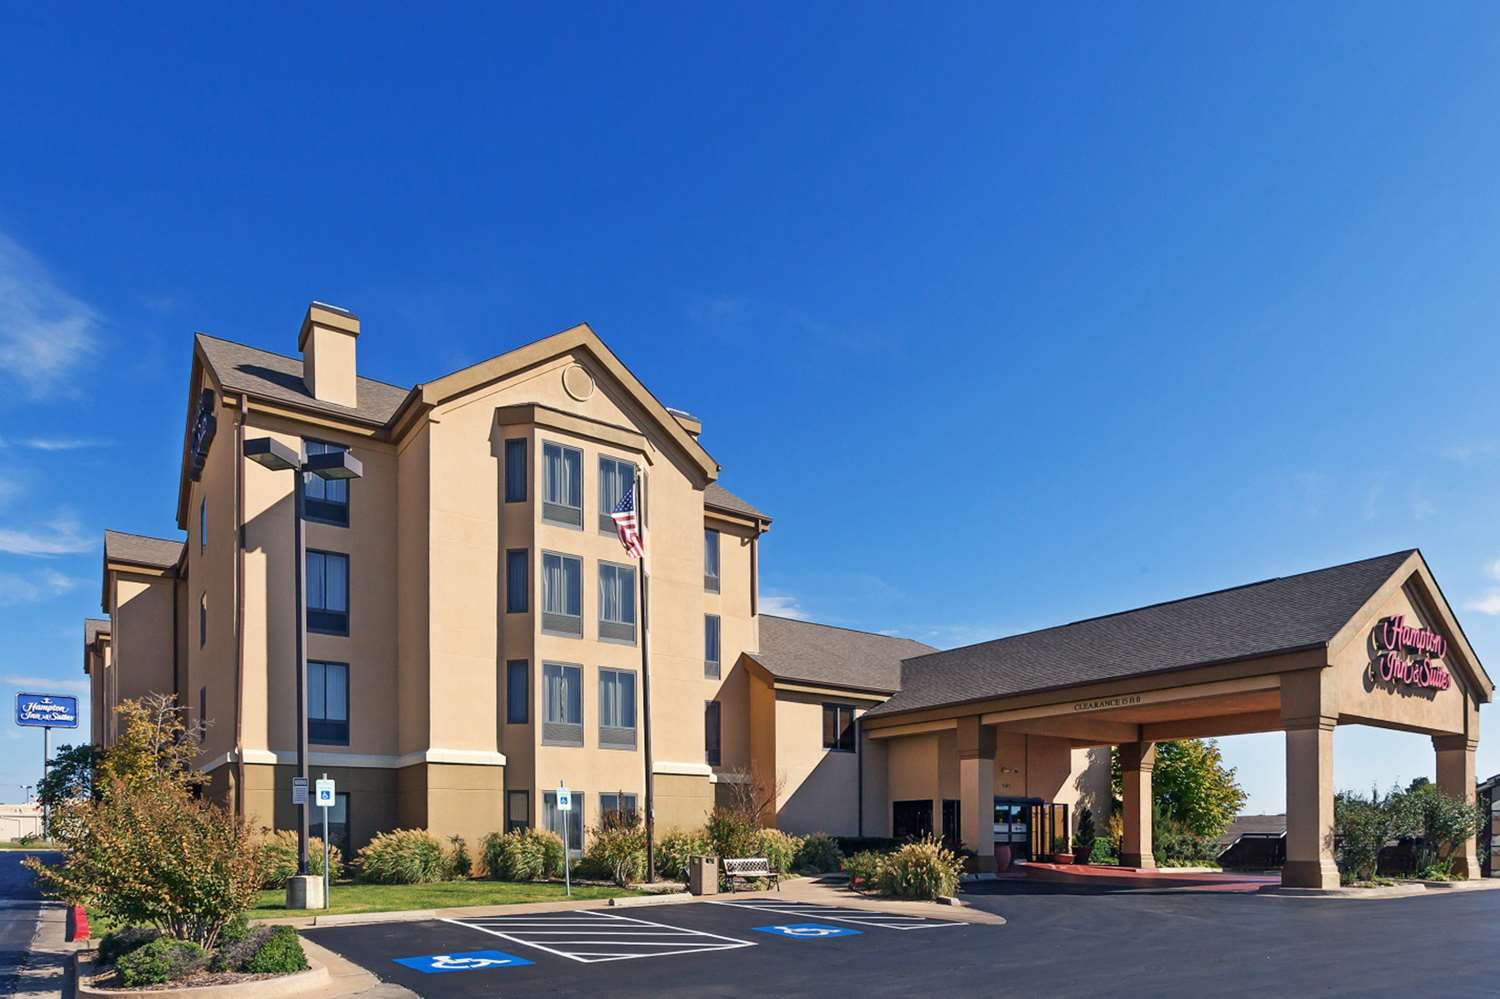 Hampton Inn & Suites Woodland Hills Tulsa